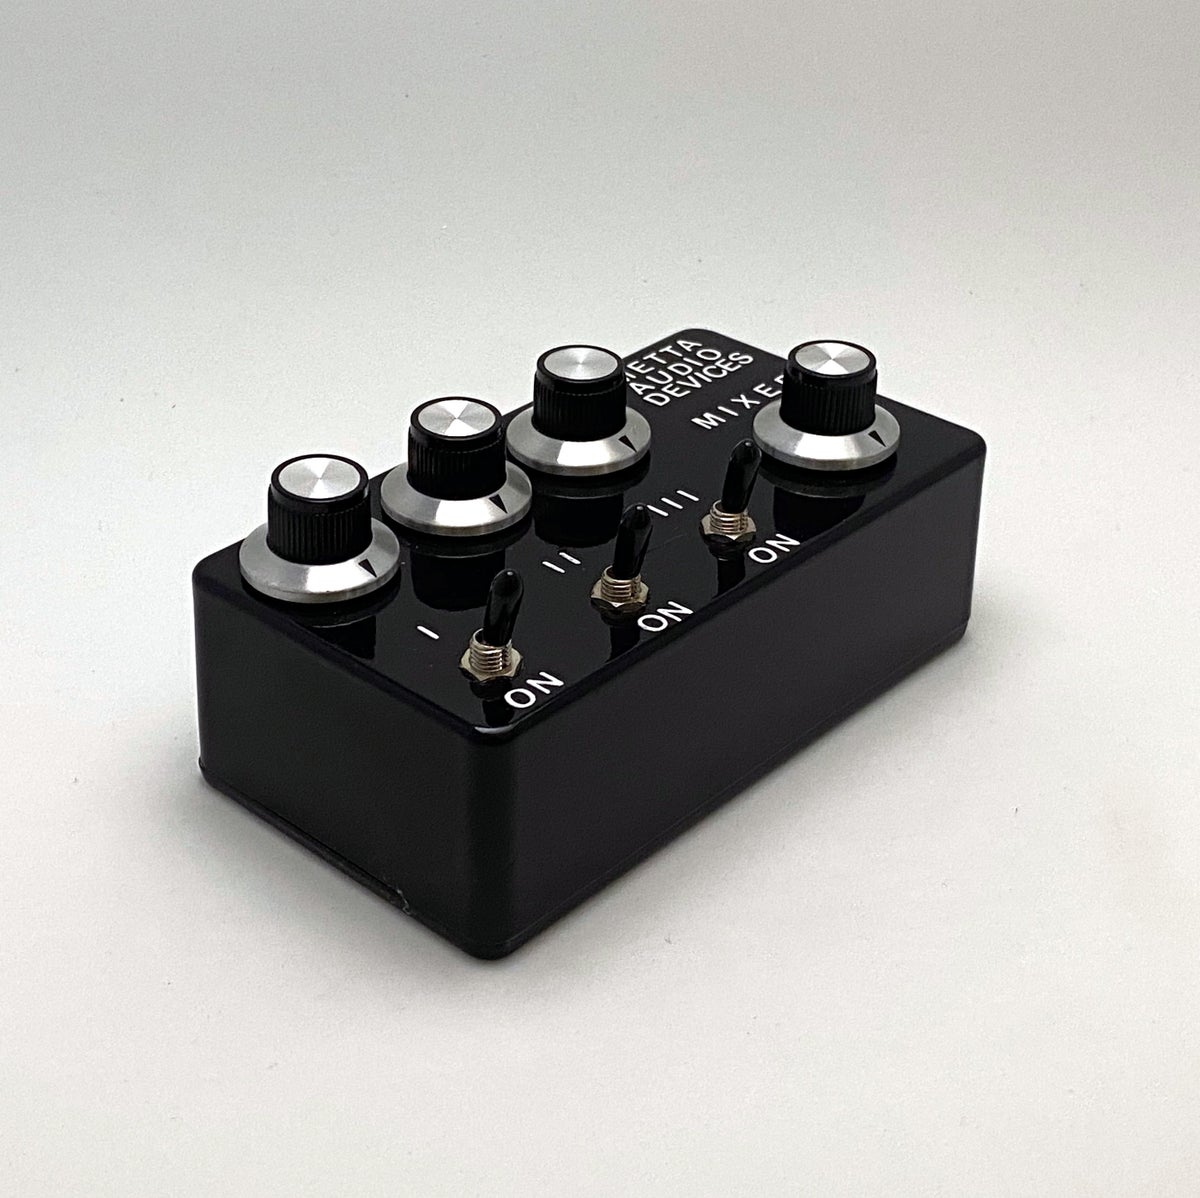 Image of Metta Mixer / 3 Channel Passive Instrument Summing Mixer